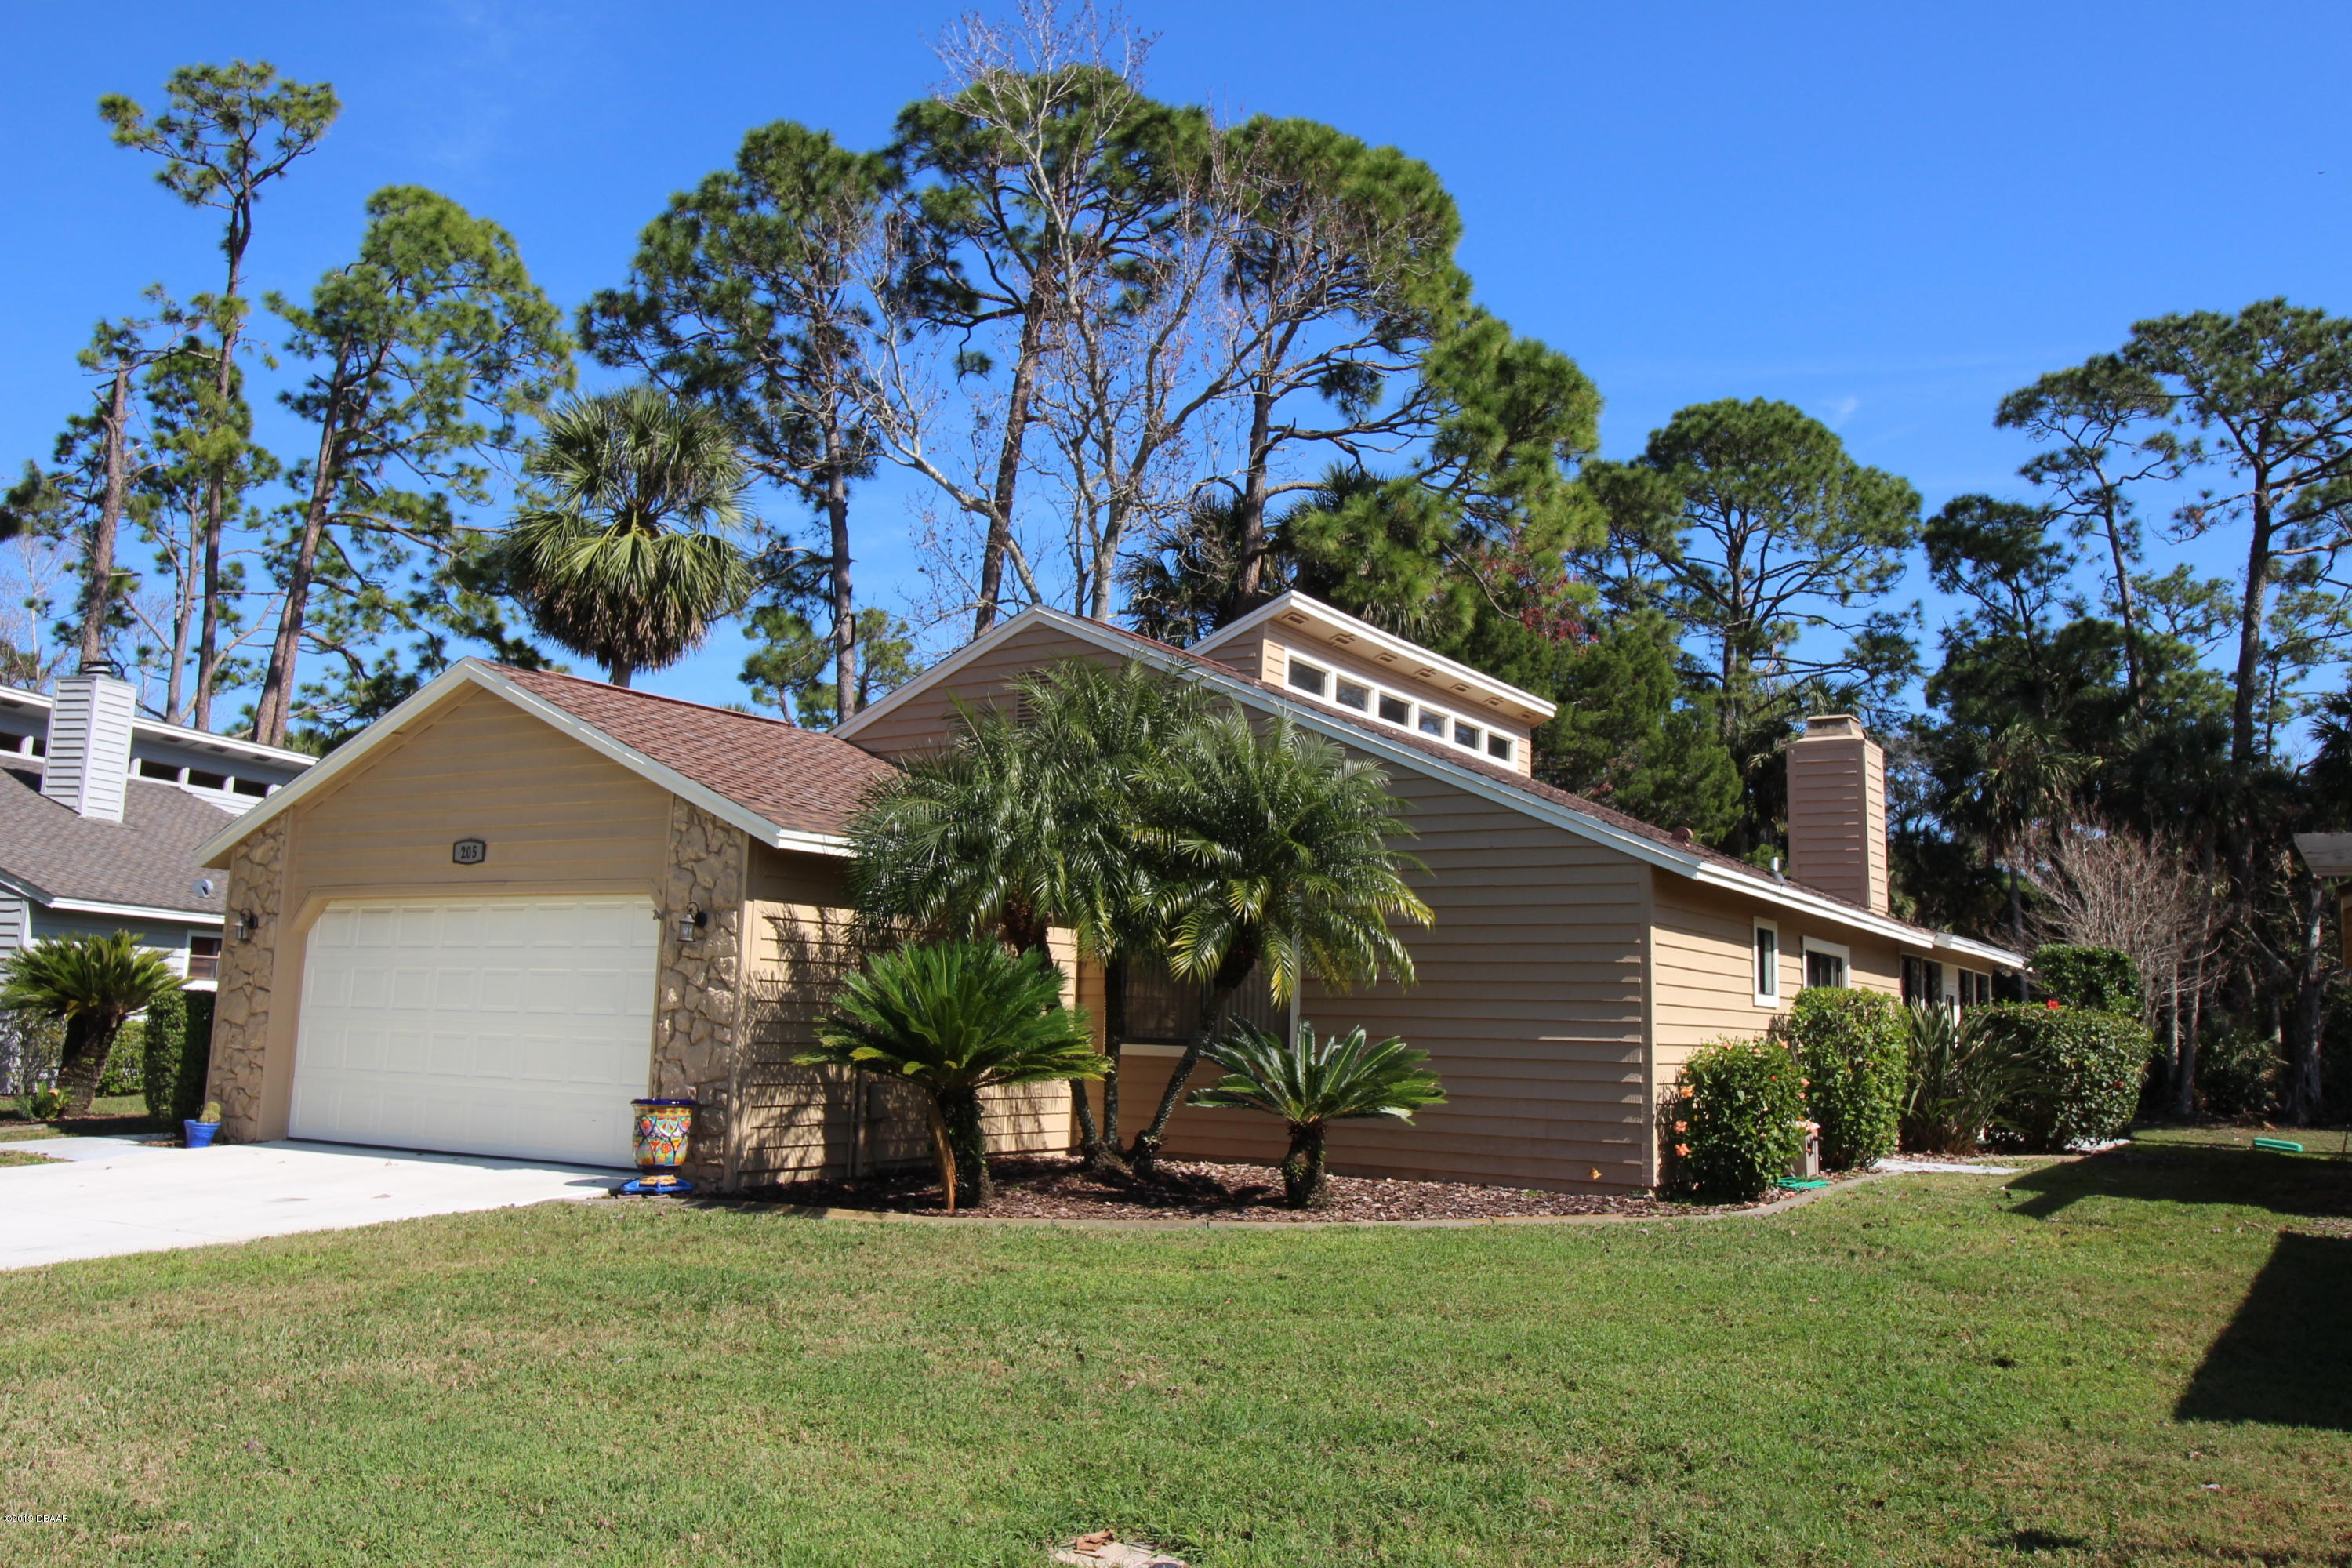 Photo of 205 S Gull Drive, Daytona Beach, FL 32119